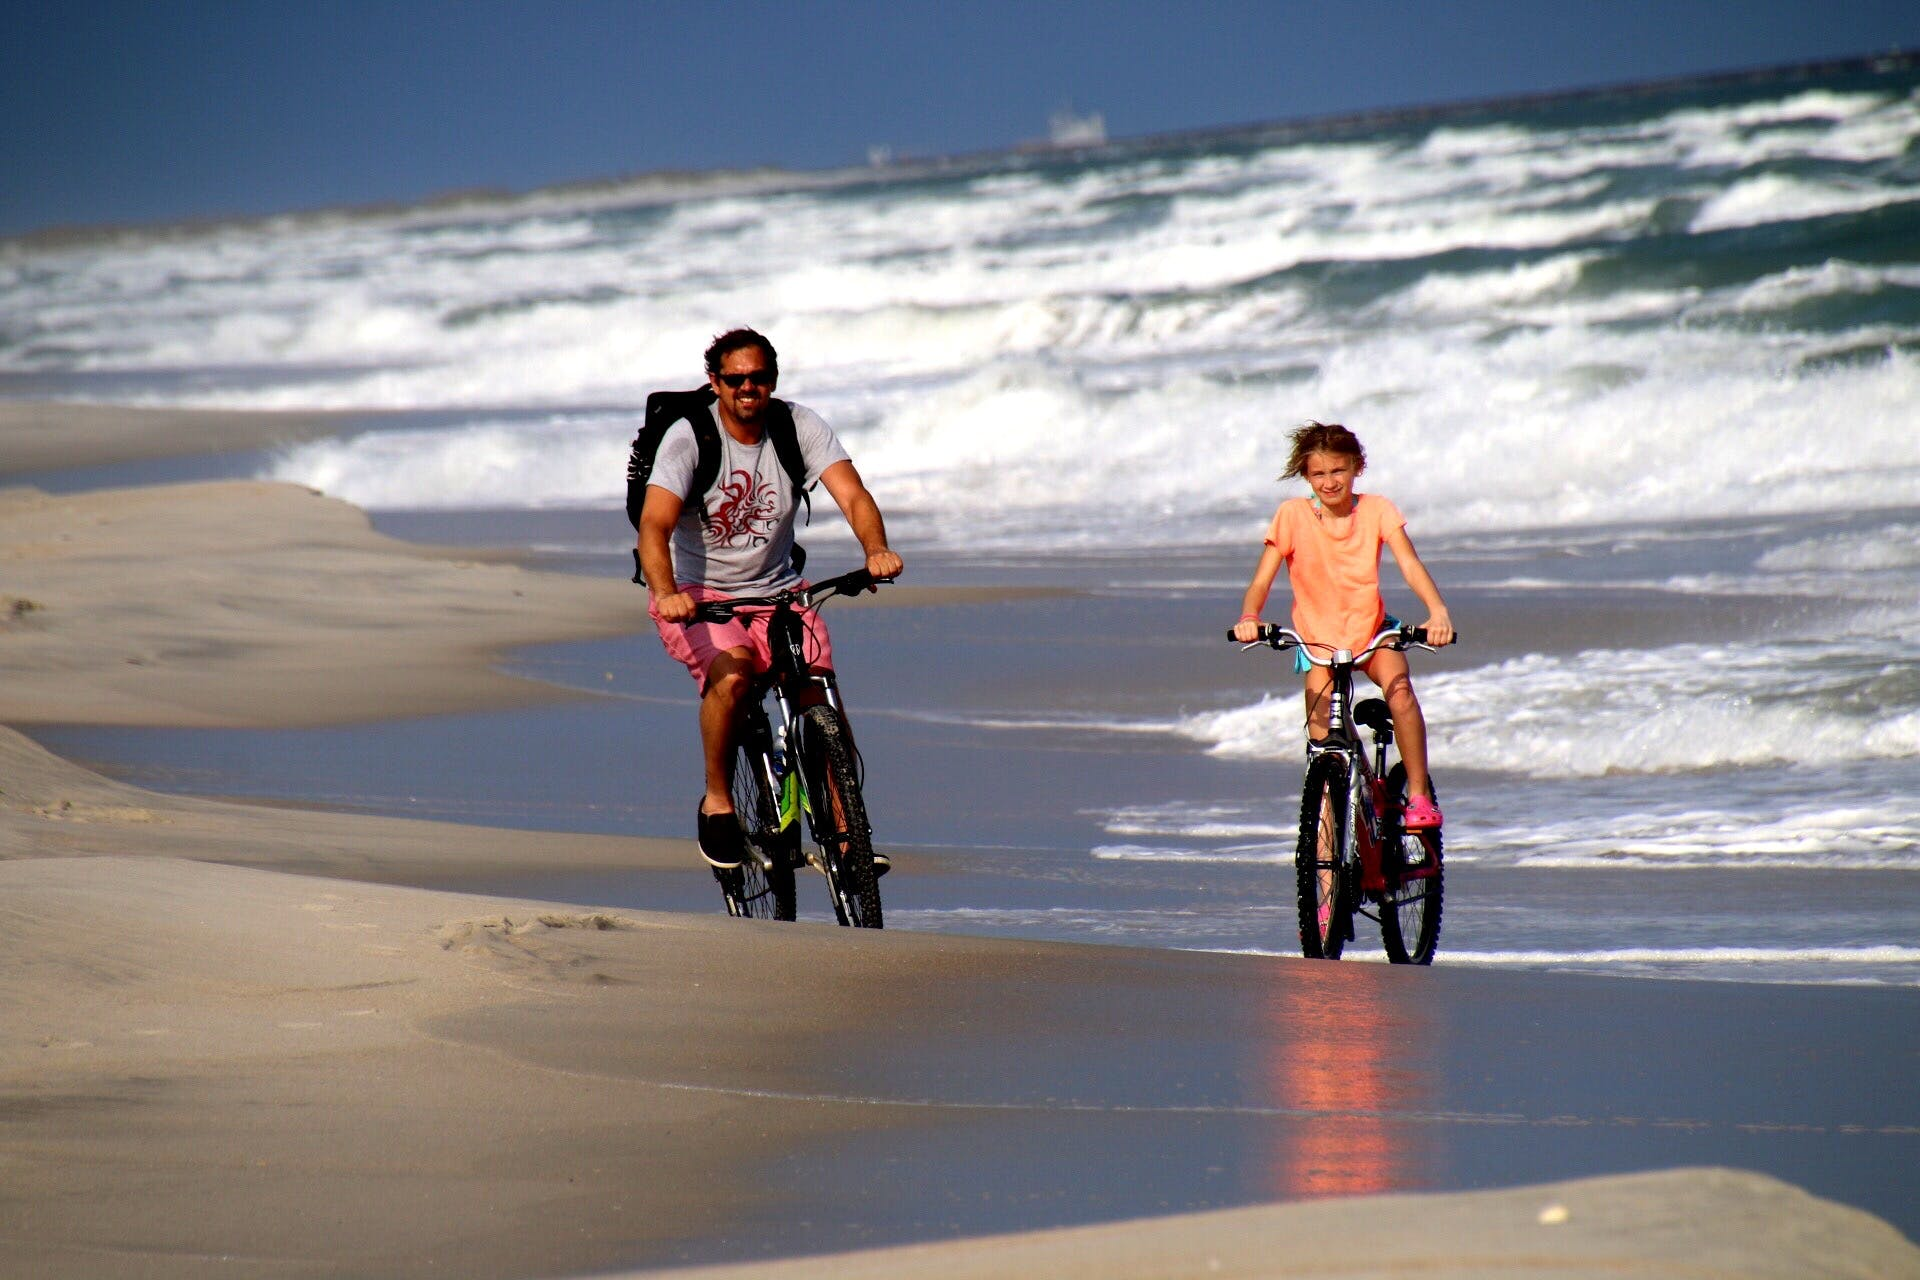 myrtle beach camping and biking at Huntington Beach State Park